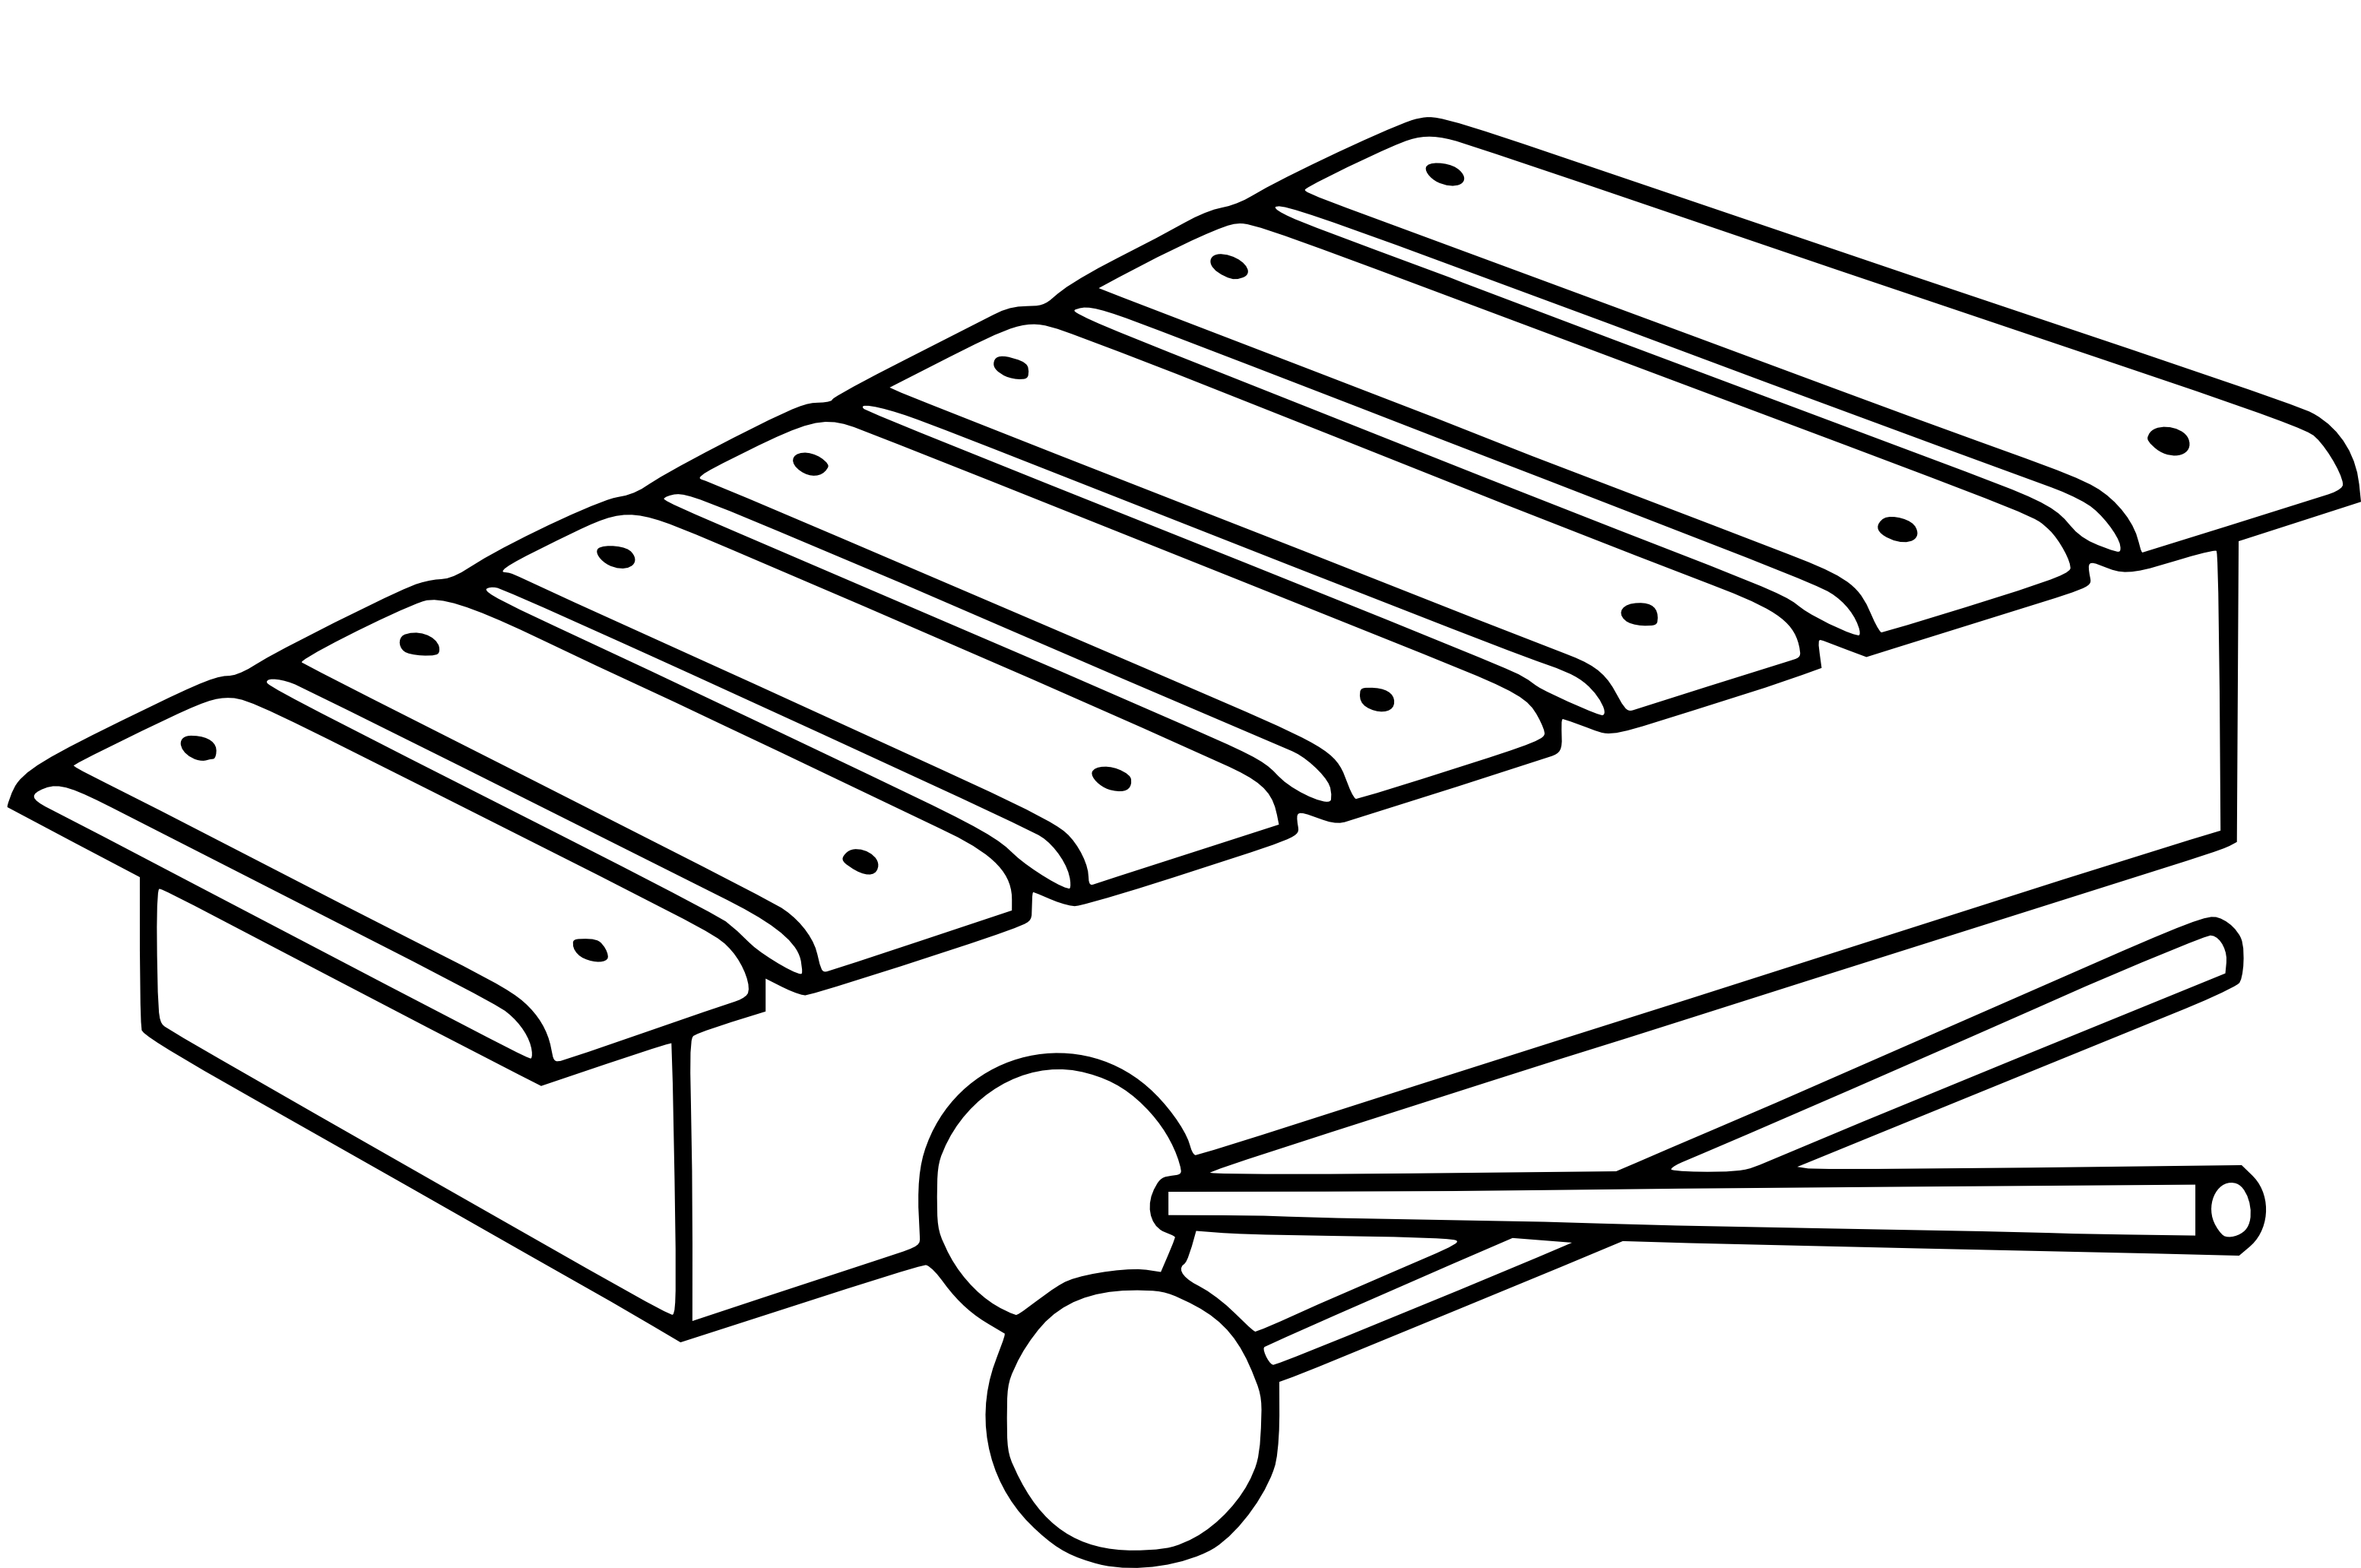 Coloring page xylophone